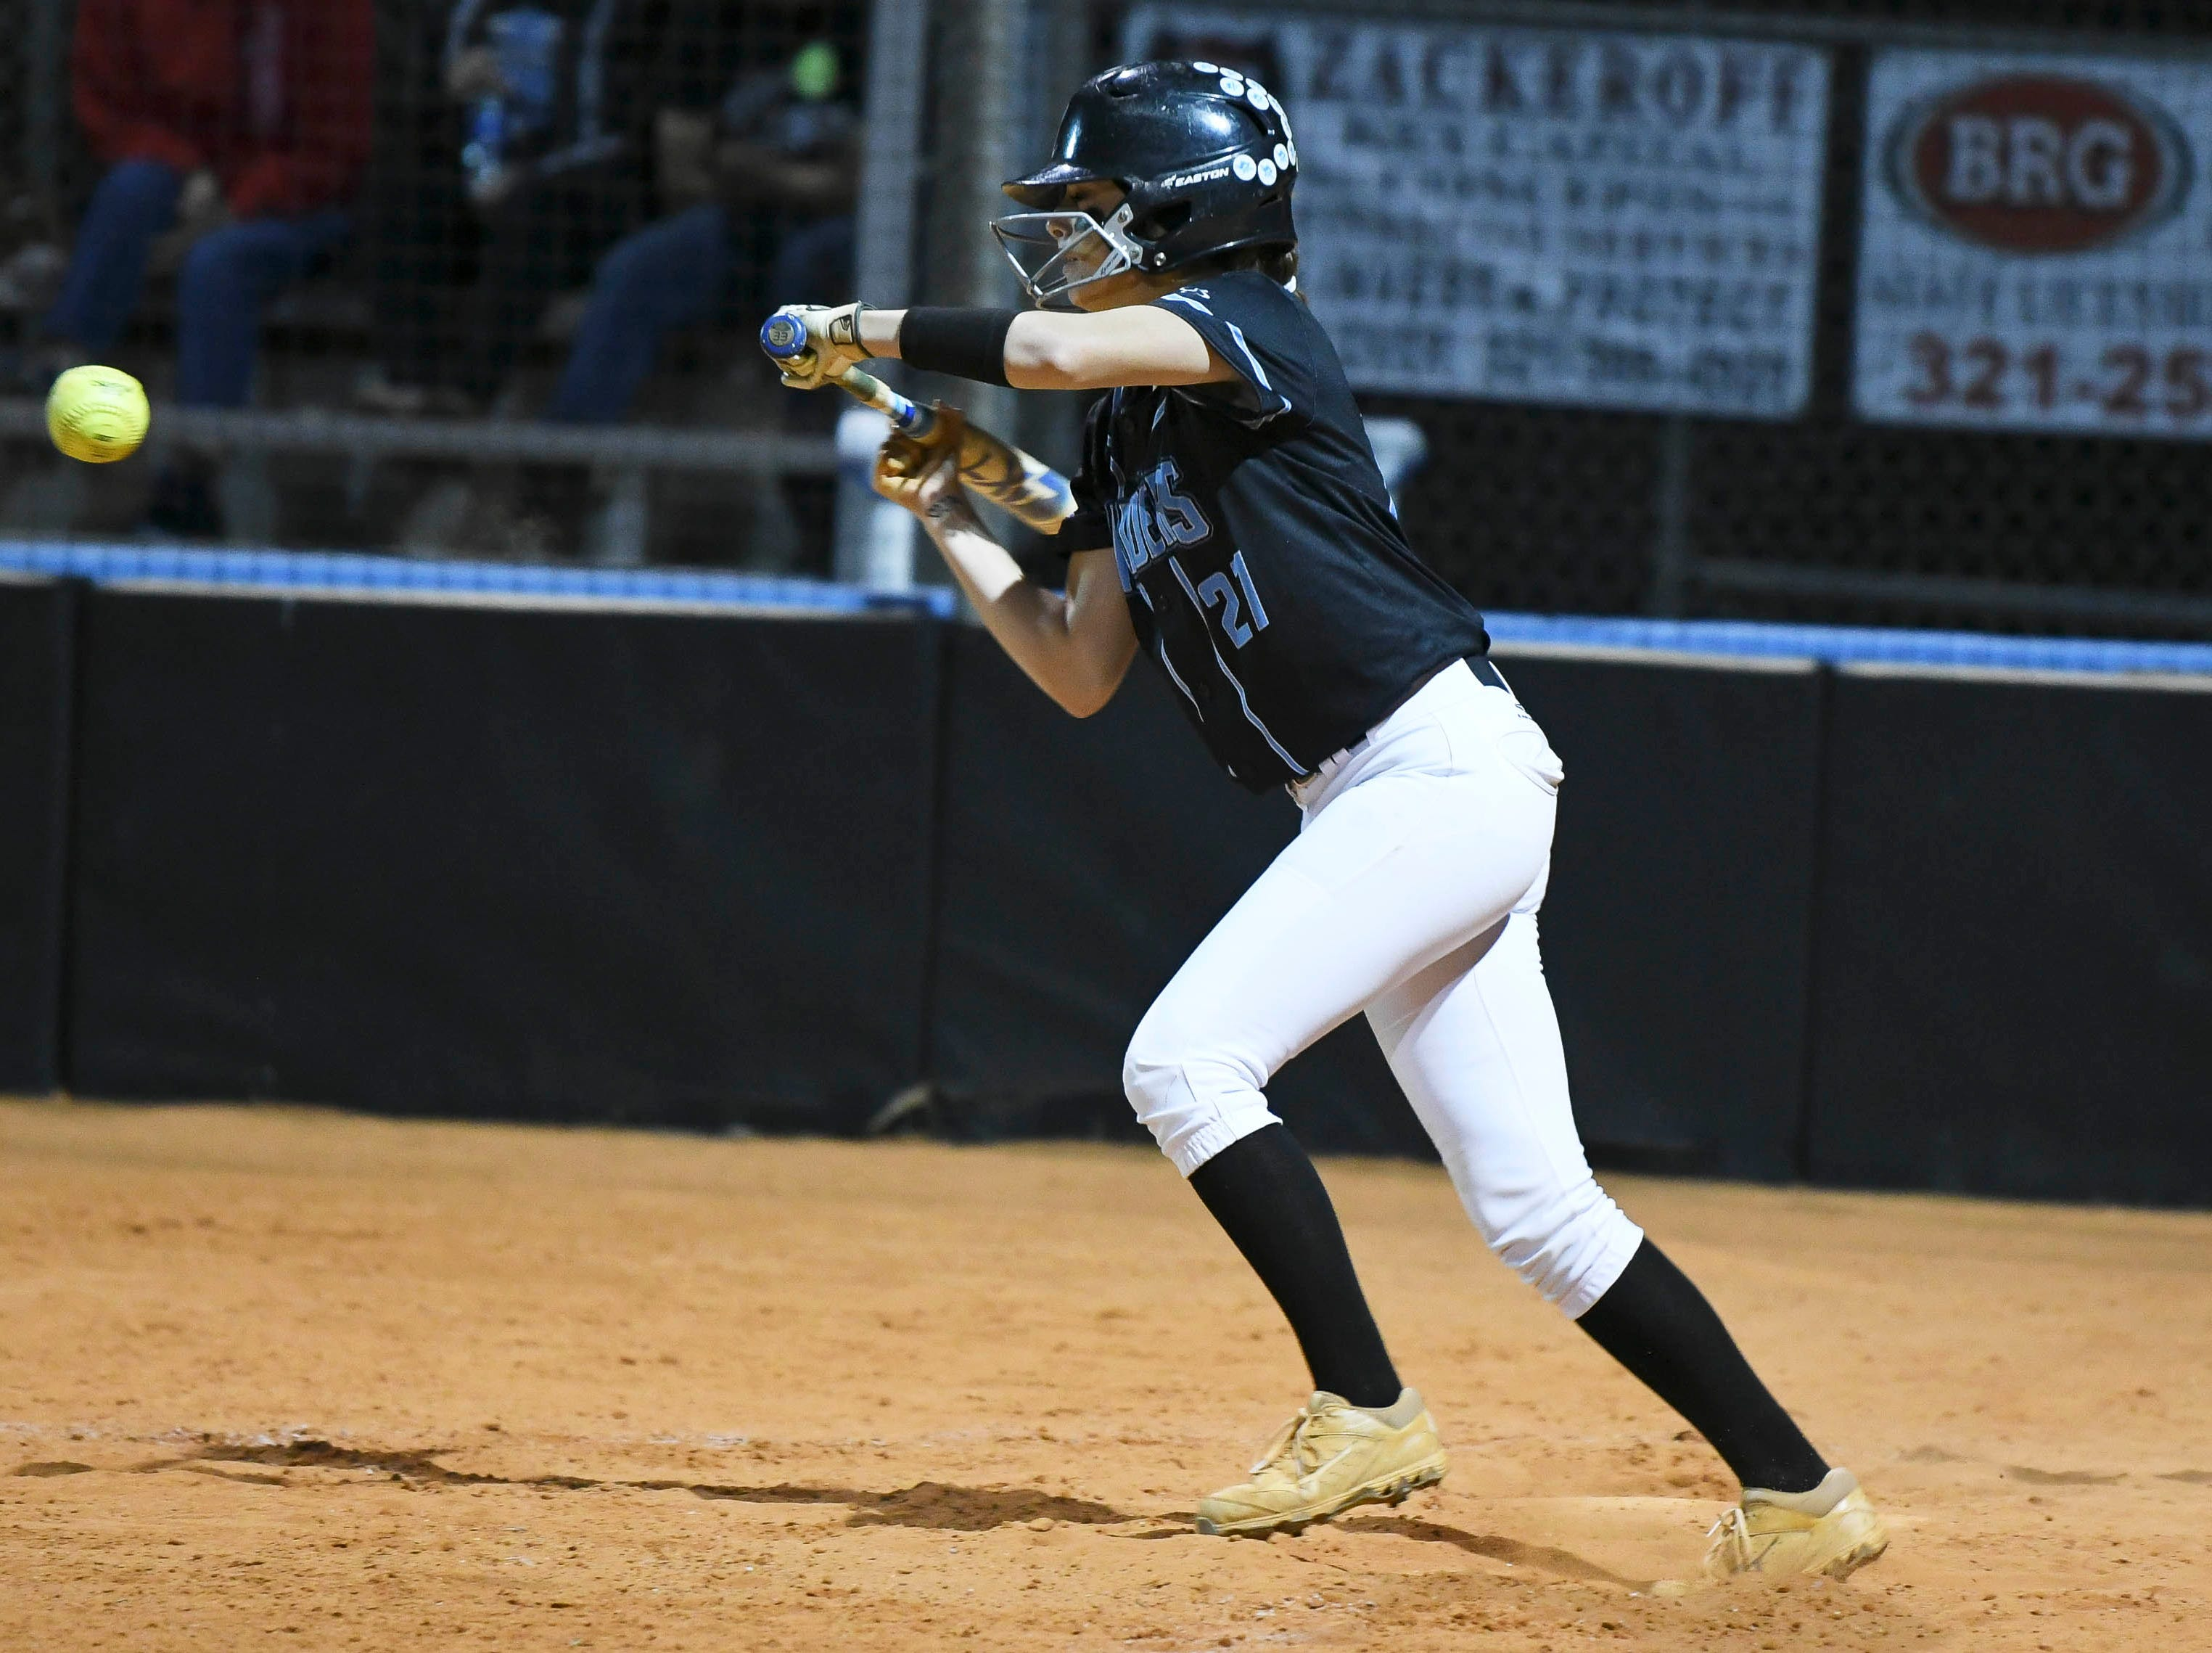 Cali Madonna of Rockledge attempts a bunt during Wednesday's game against Astronaut.